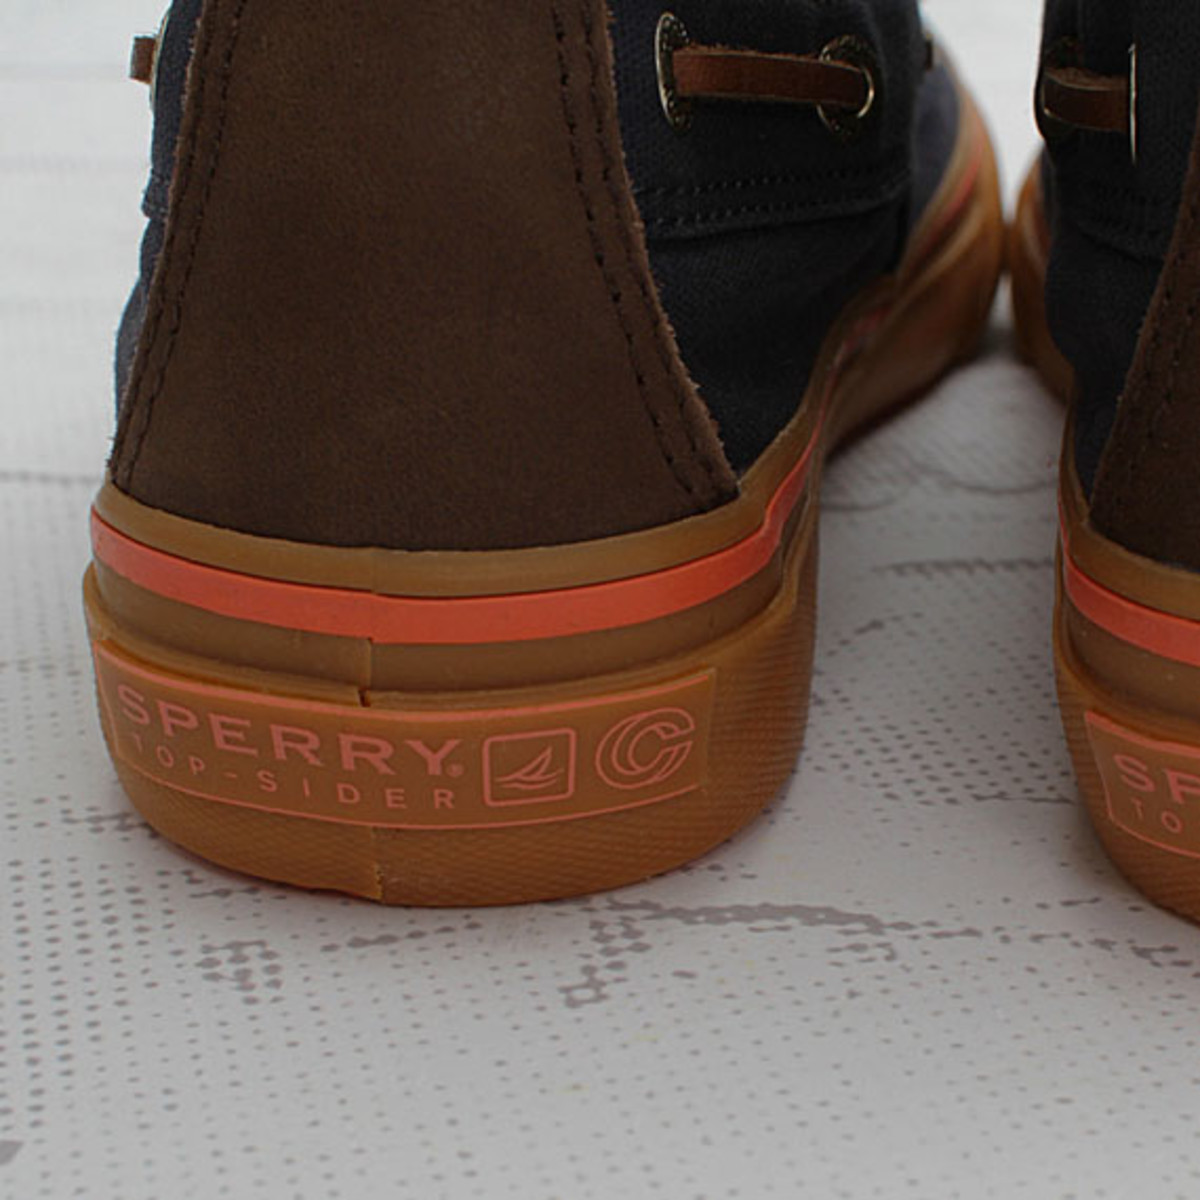 concepts-sperry-top-sider-bahama-boot-fall-2012-17